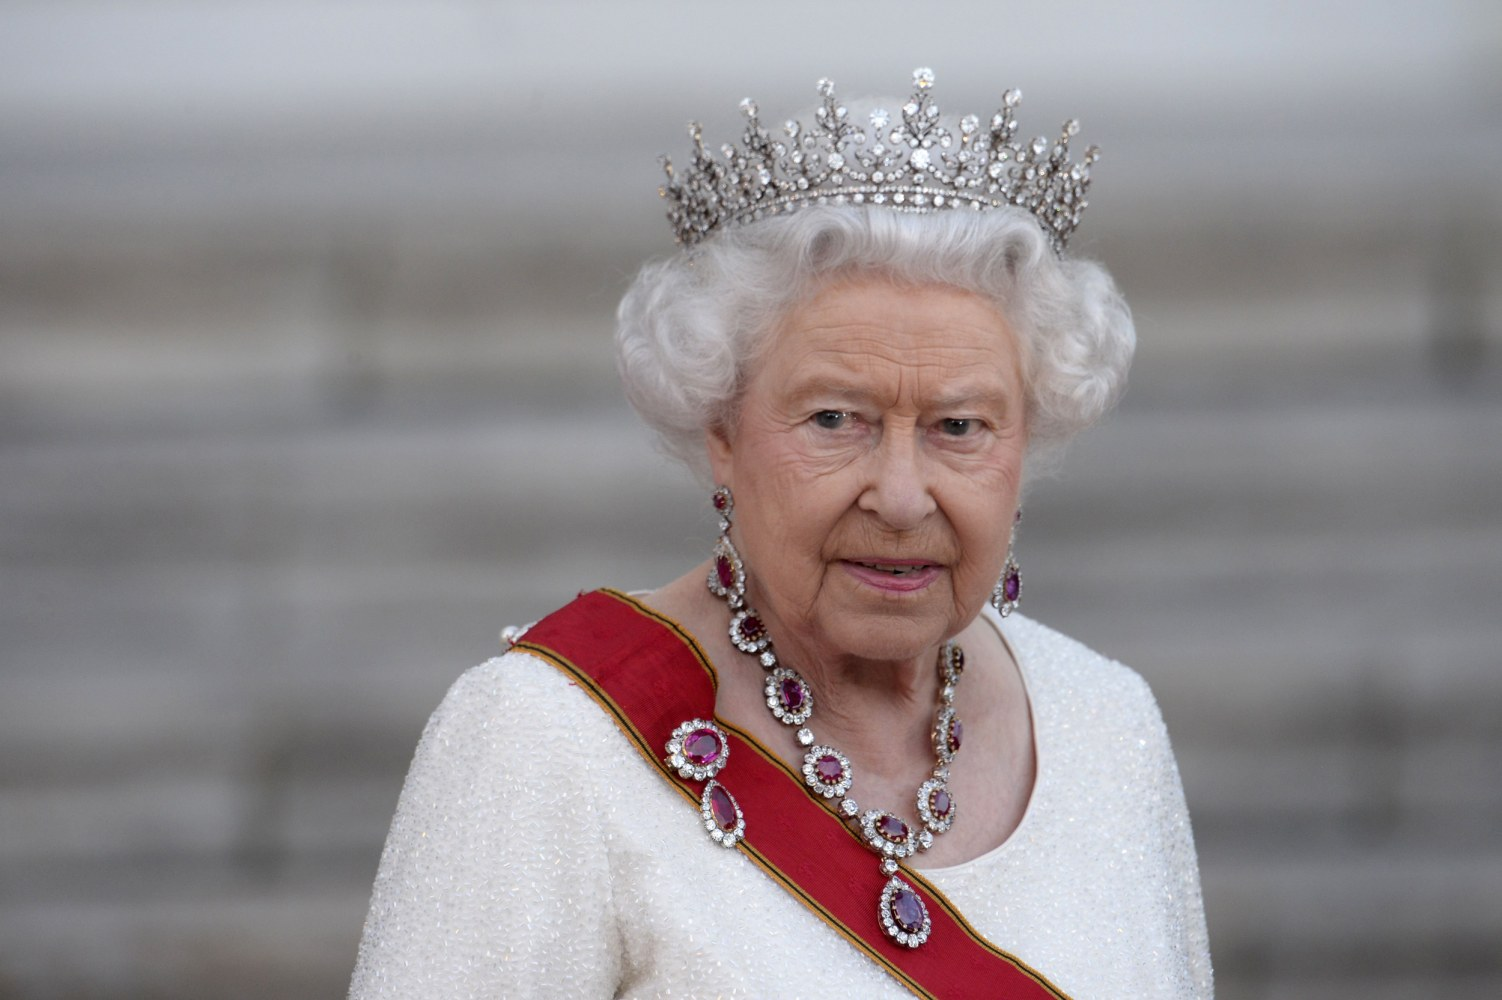 Queen Elizabeth II to miss Christmas church service due to 'heavy cold'